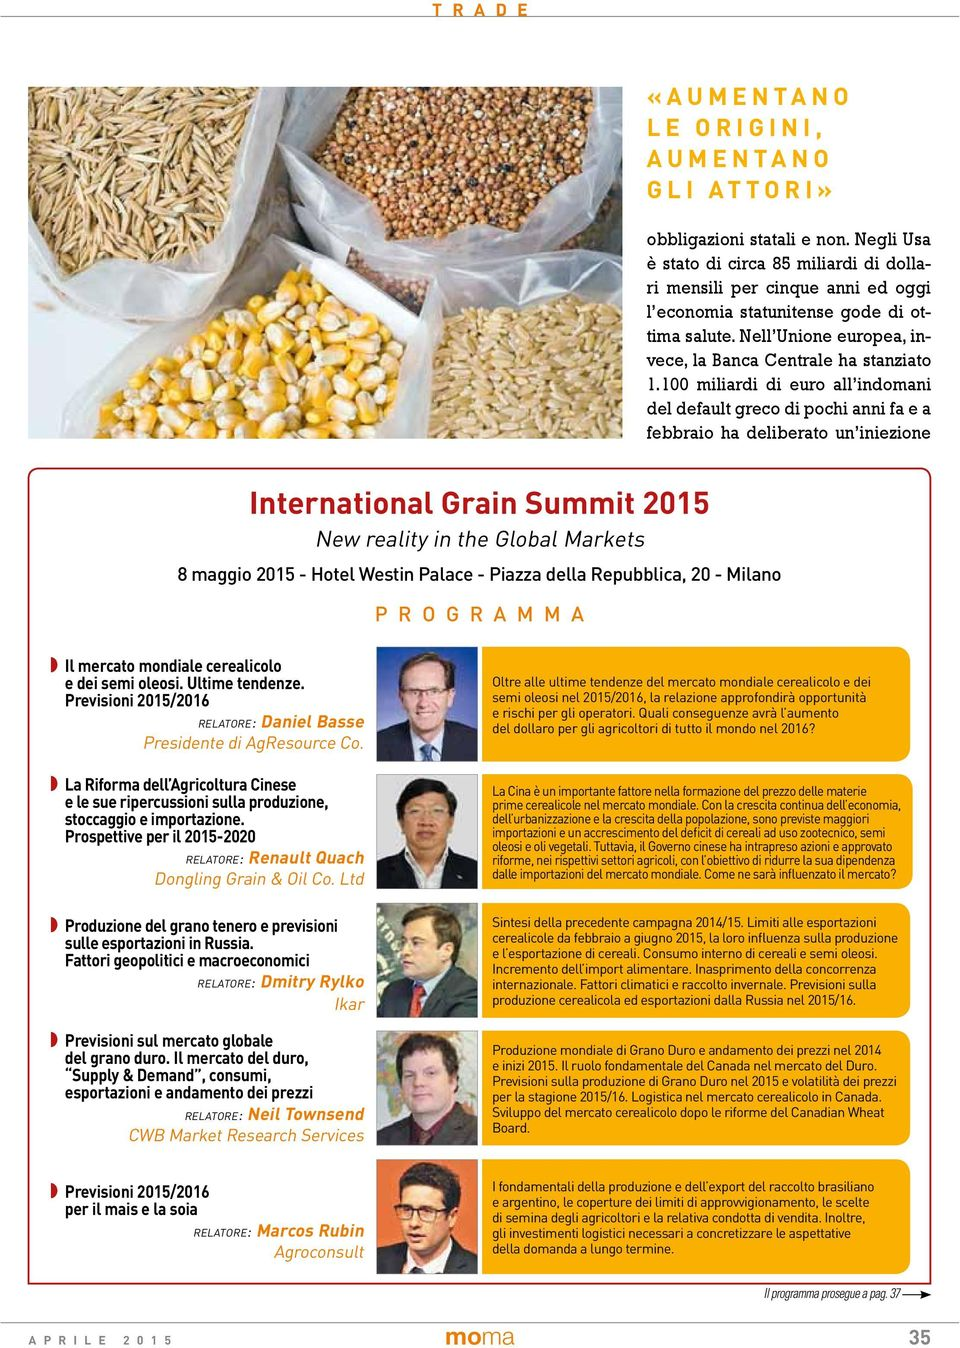 100 miliardi di euro all indomani del default greco di pochi anni fa e a febbraio ha deliberato un iniezione International Grain Summit 2015 New reality in the Global Markets 8 maggio 2015 - Hotel